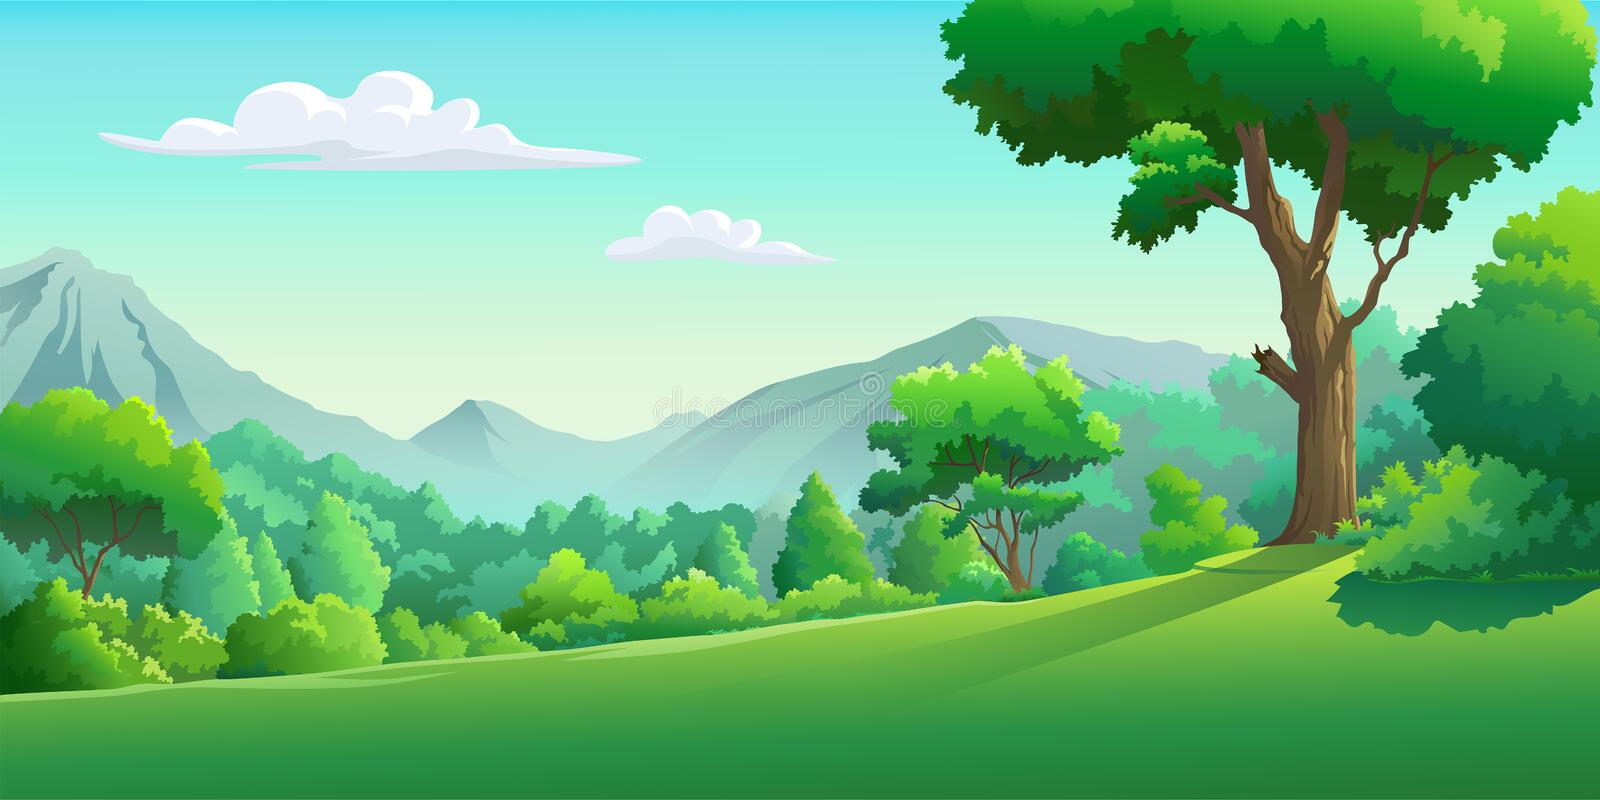 Vector images of the forest in the daytime royalty free illustration